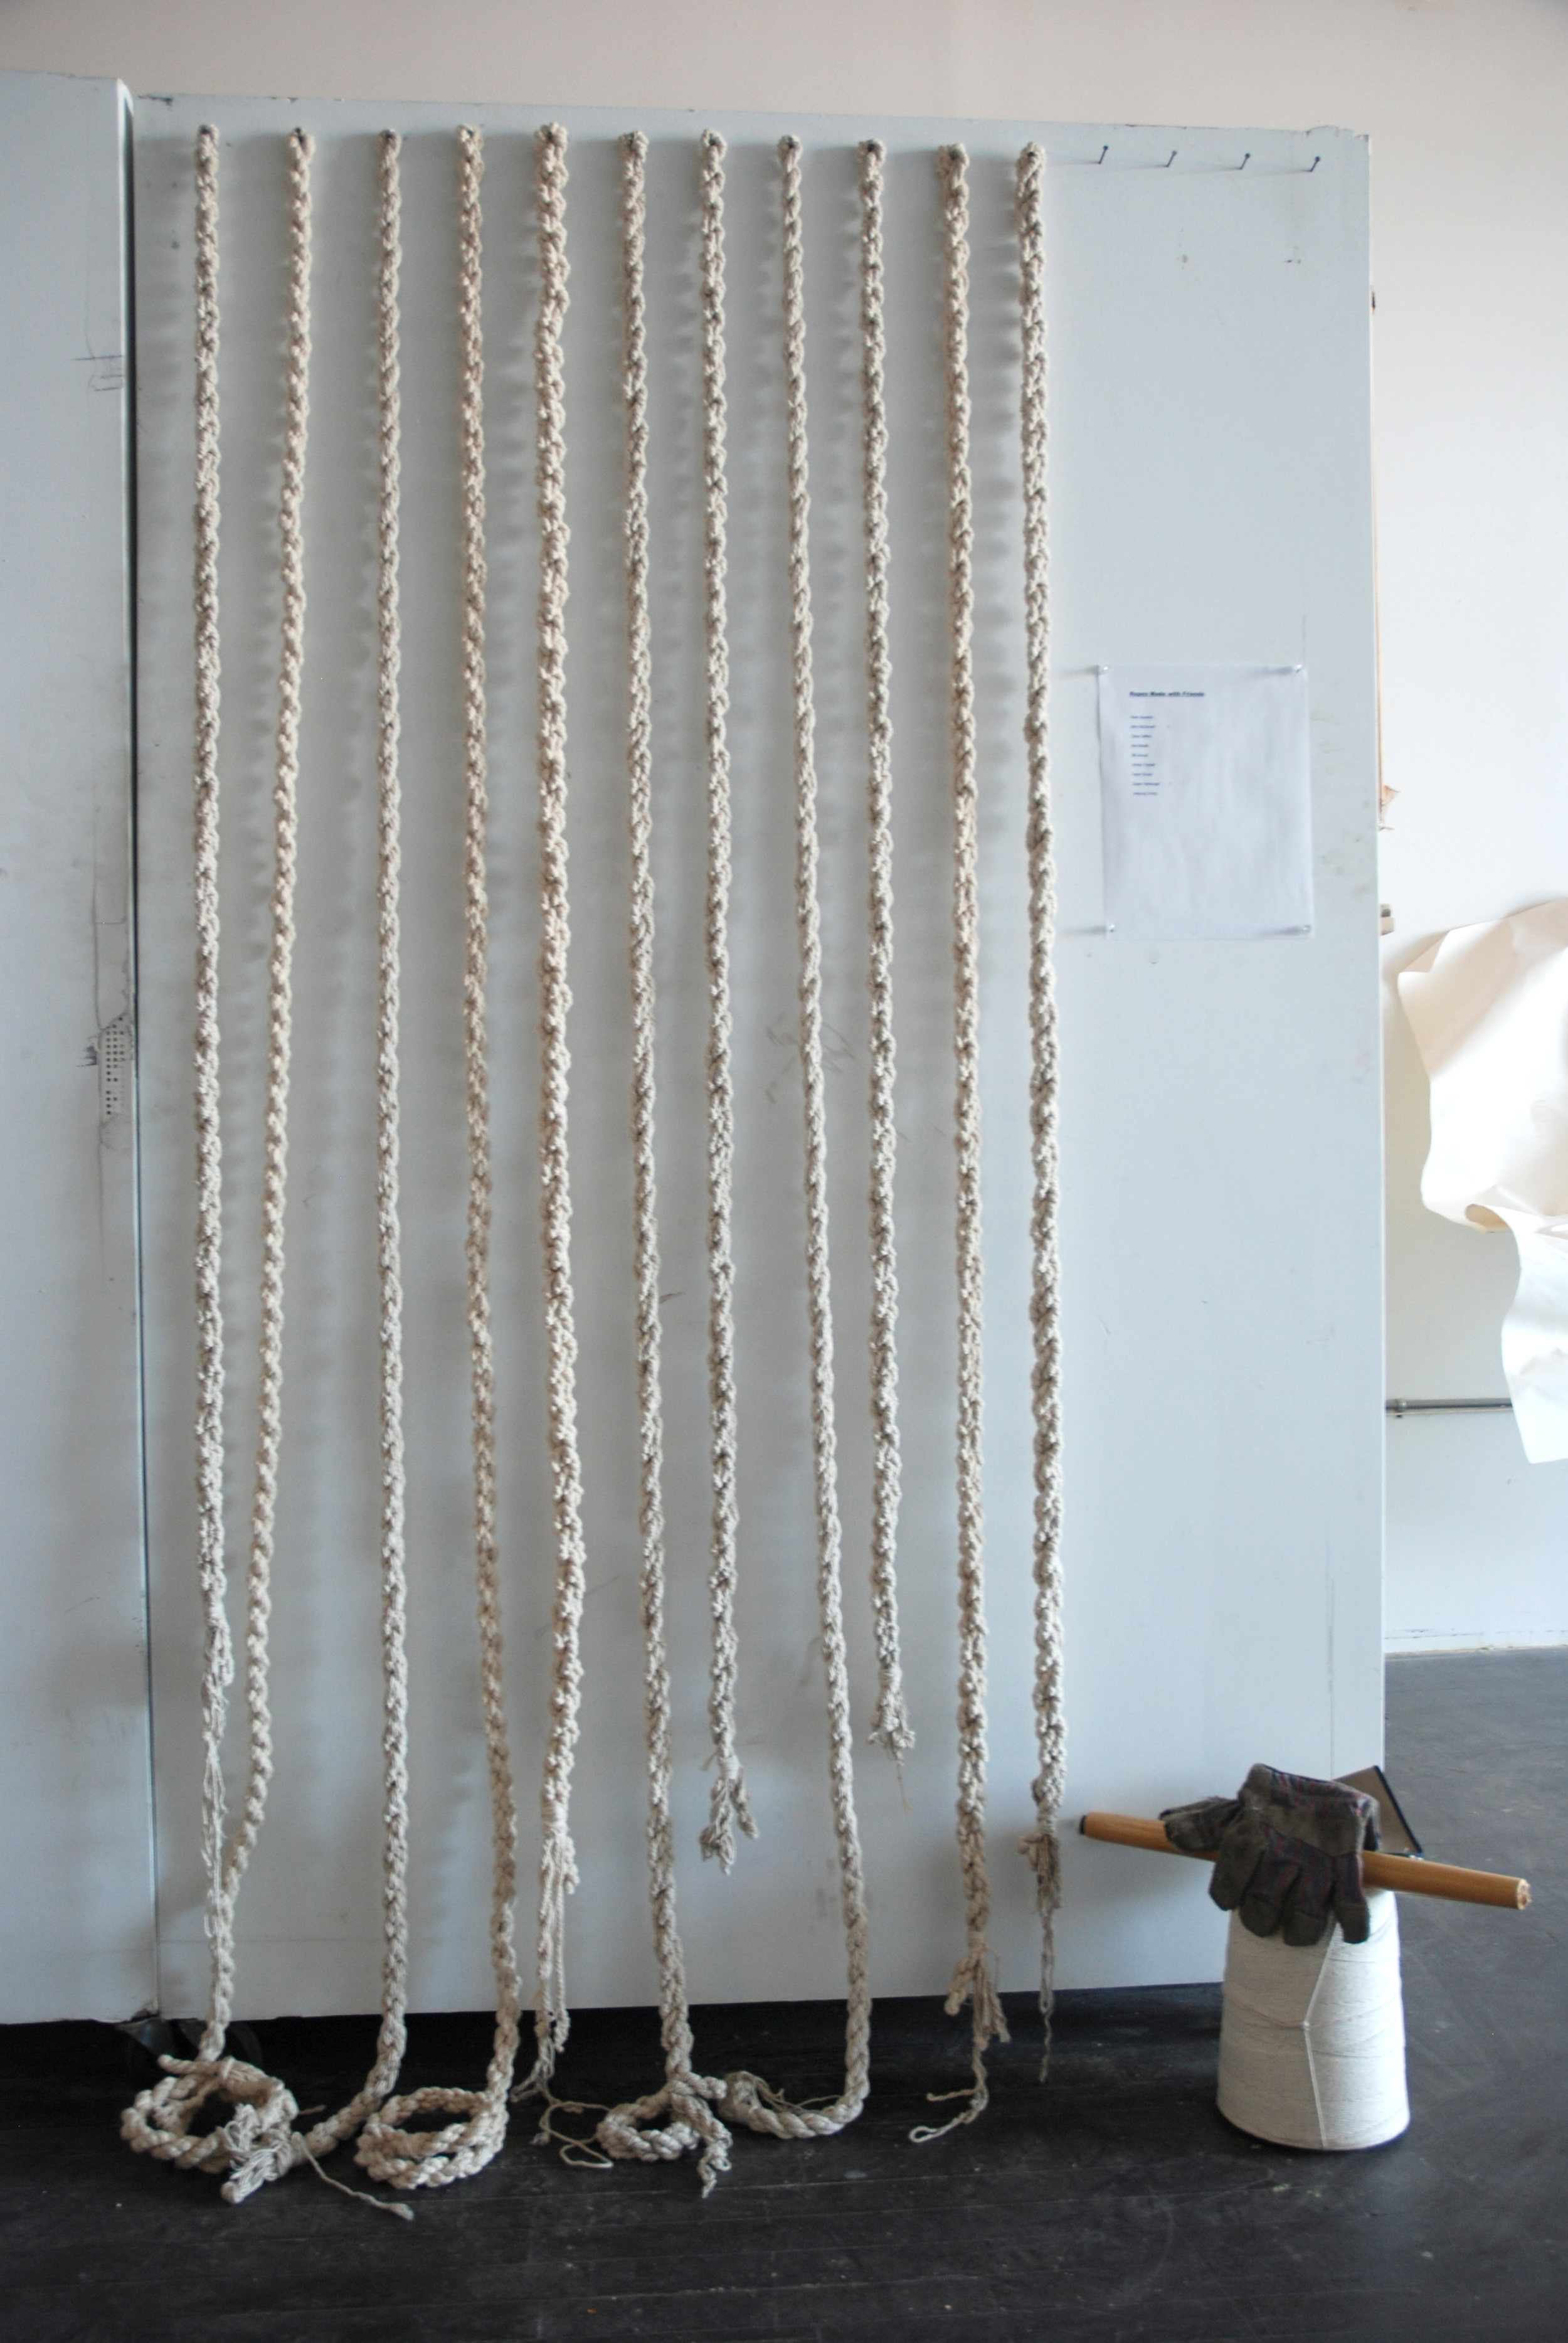 Ropes made with friends, 2011 -